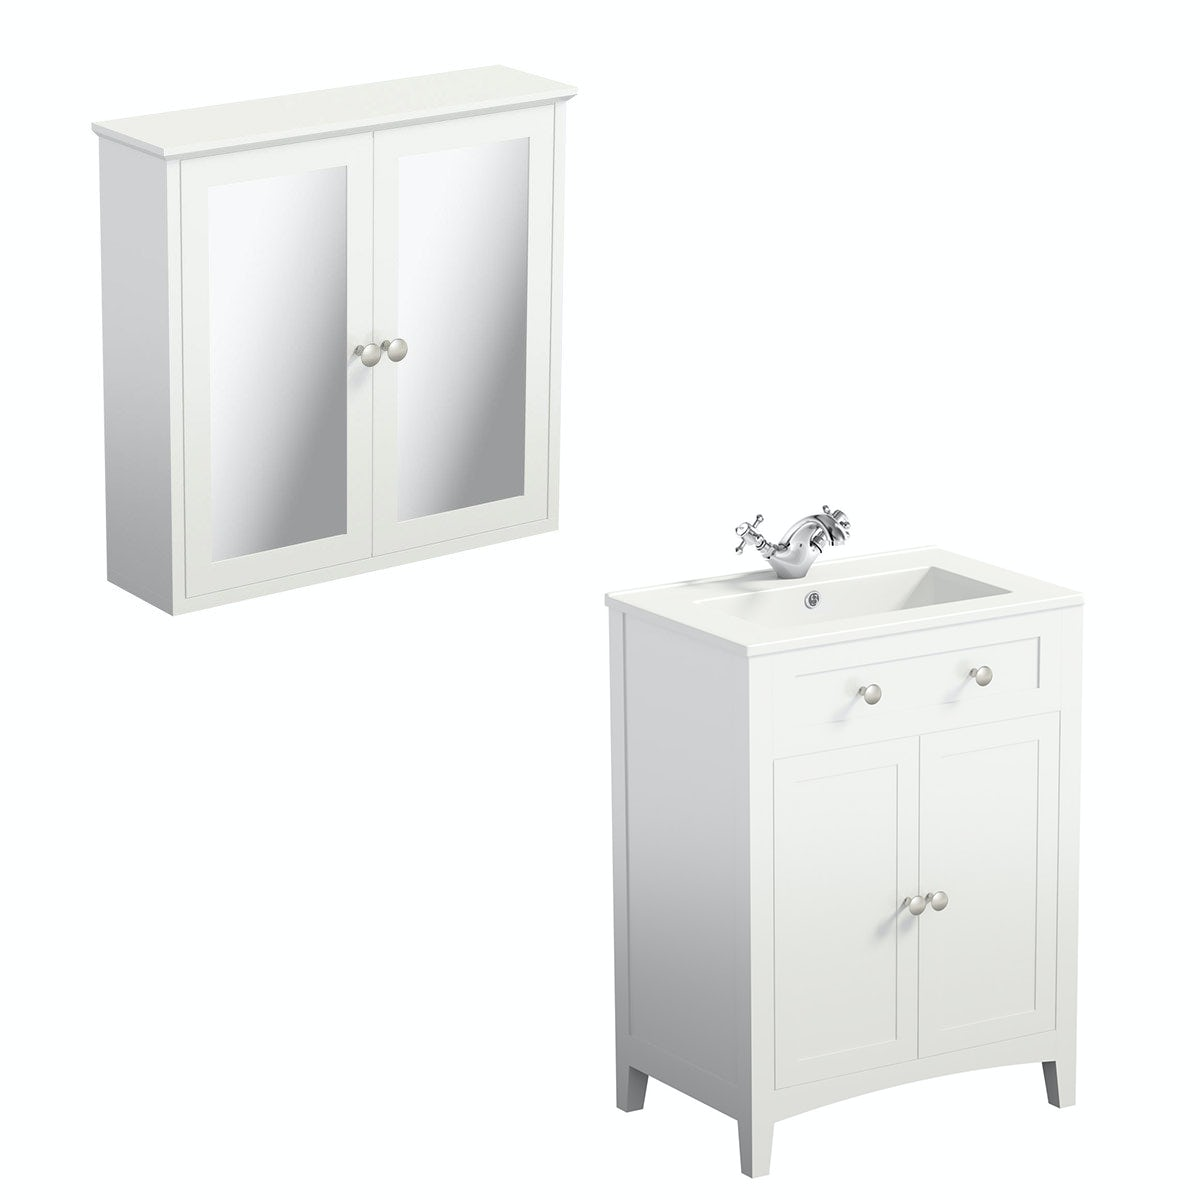 The Bath Co. Camberley white vanity unit 600mm and mirror cabinet offer